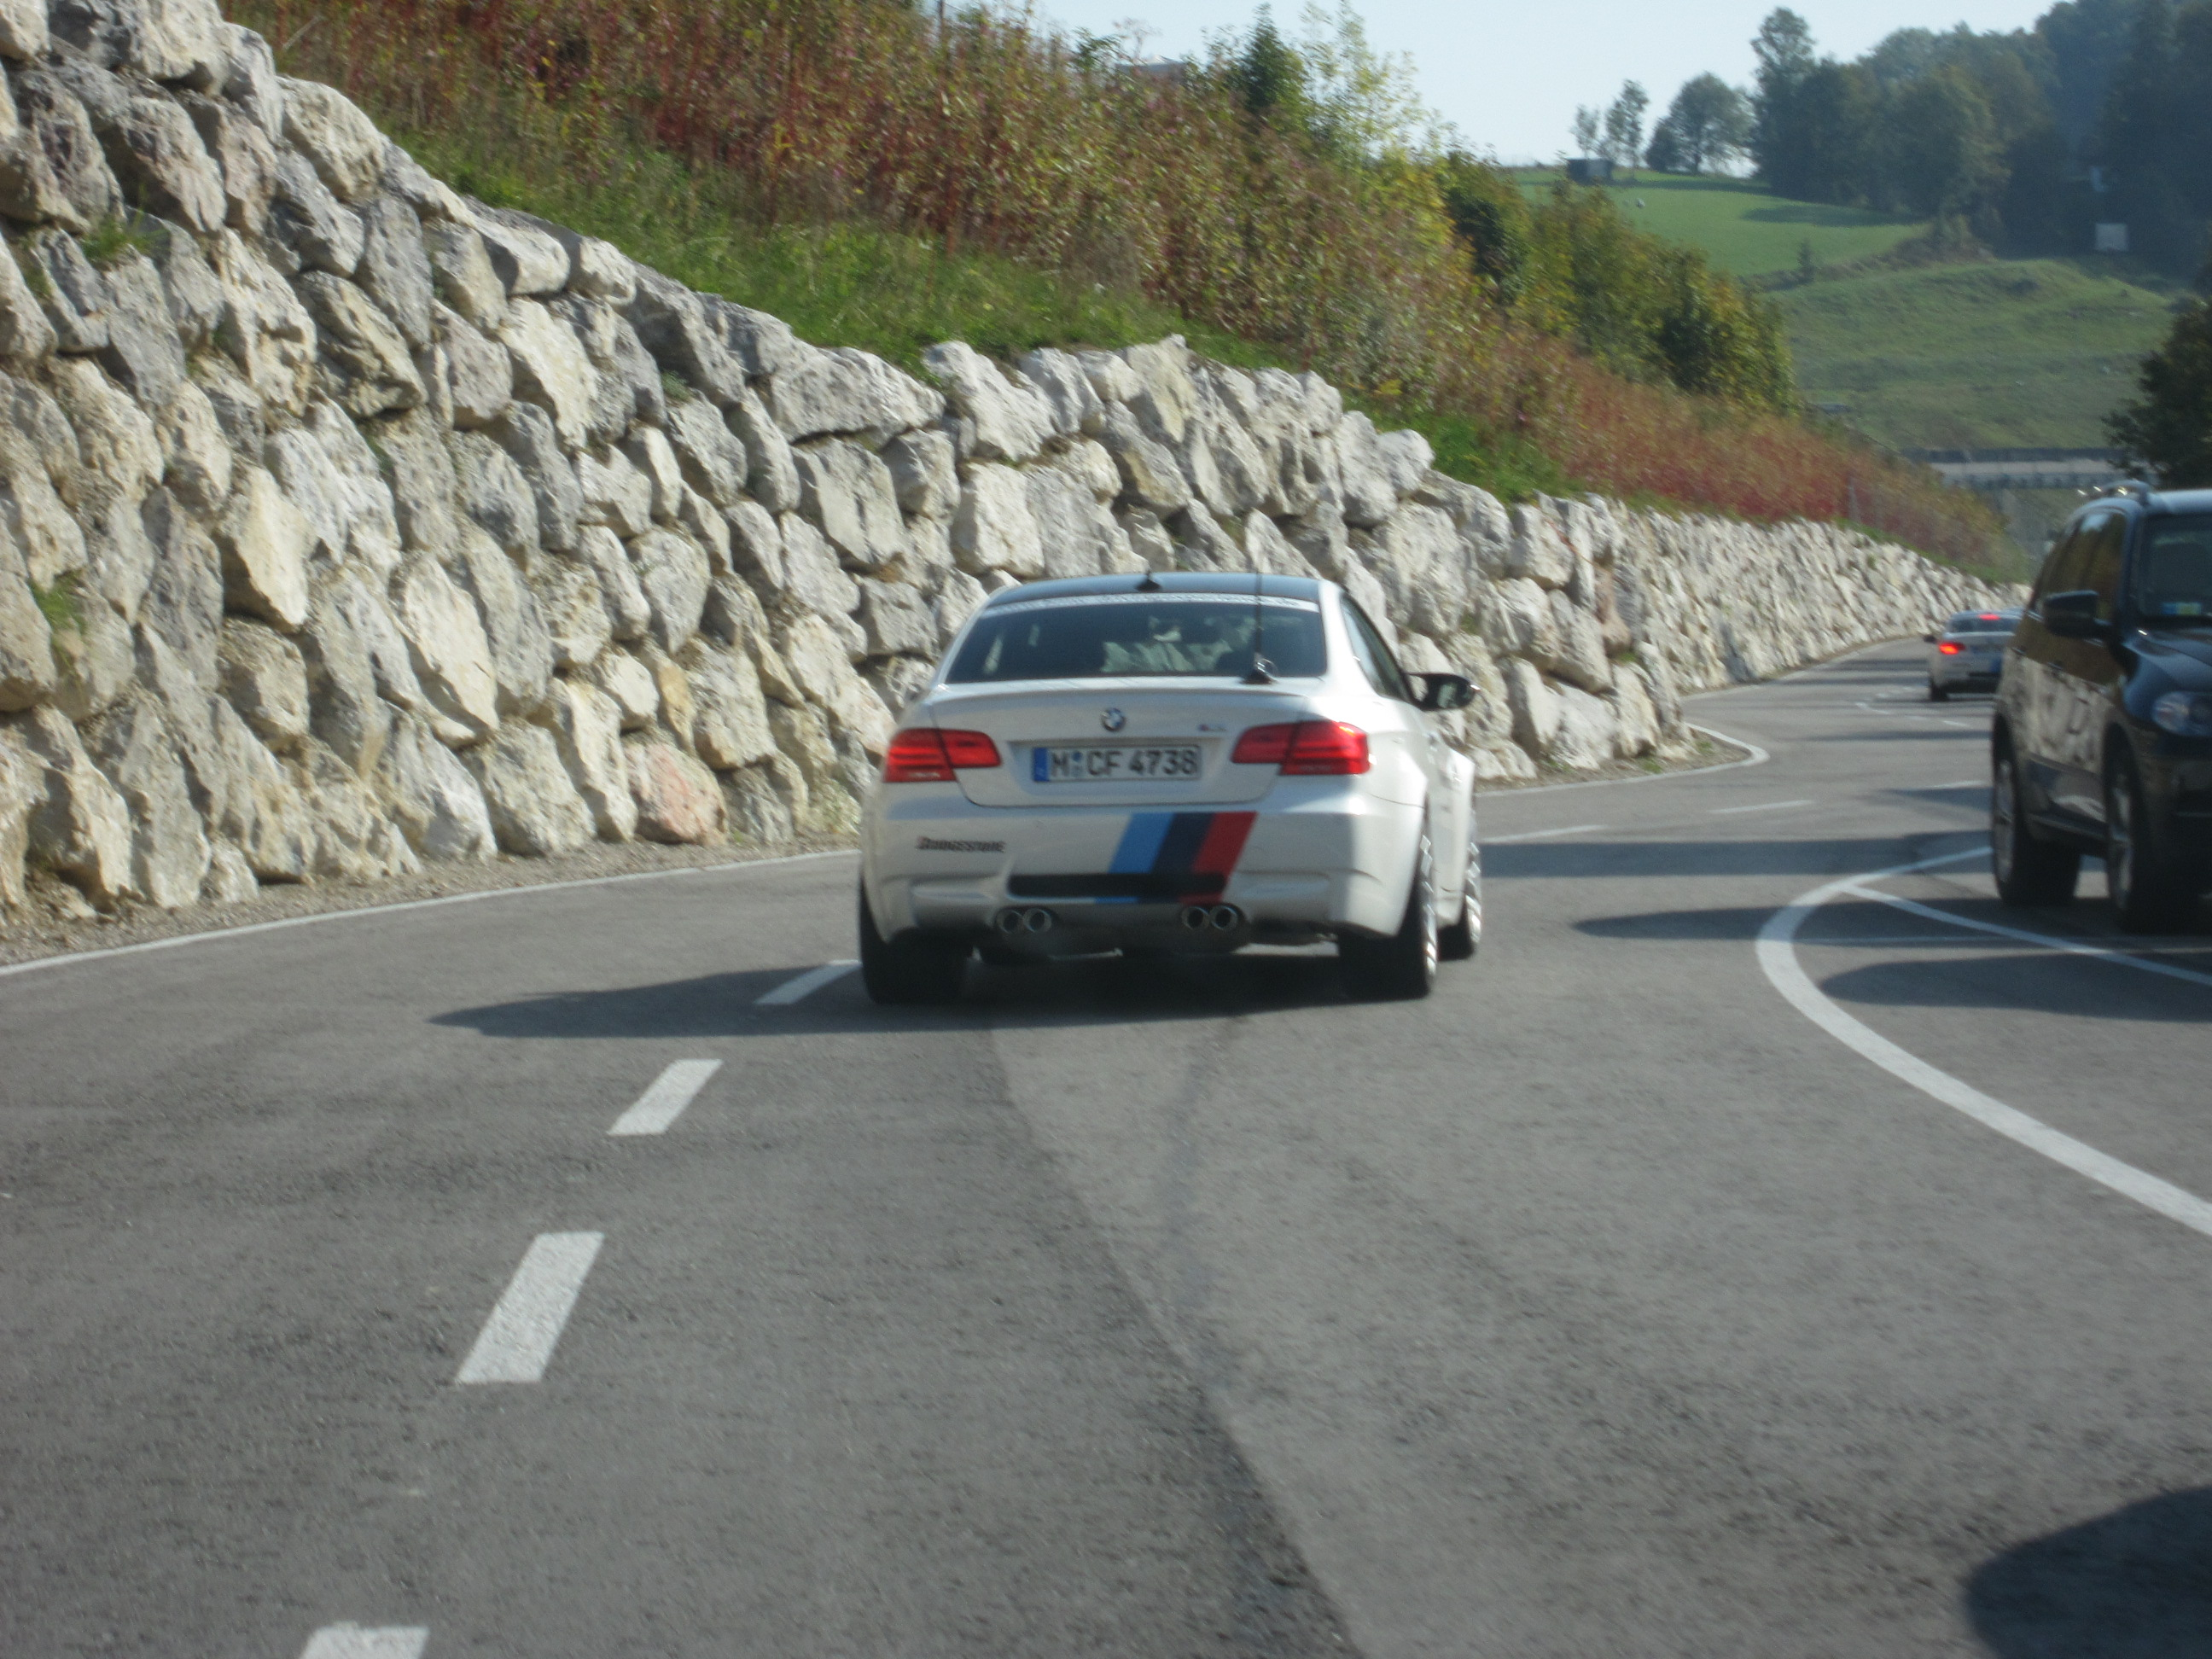 Saltzburgring [With the new BMW M5 F10 Twin Turbo chasing BMW M3 Competition Package]-img_2476.jpg